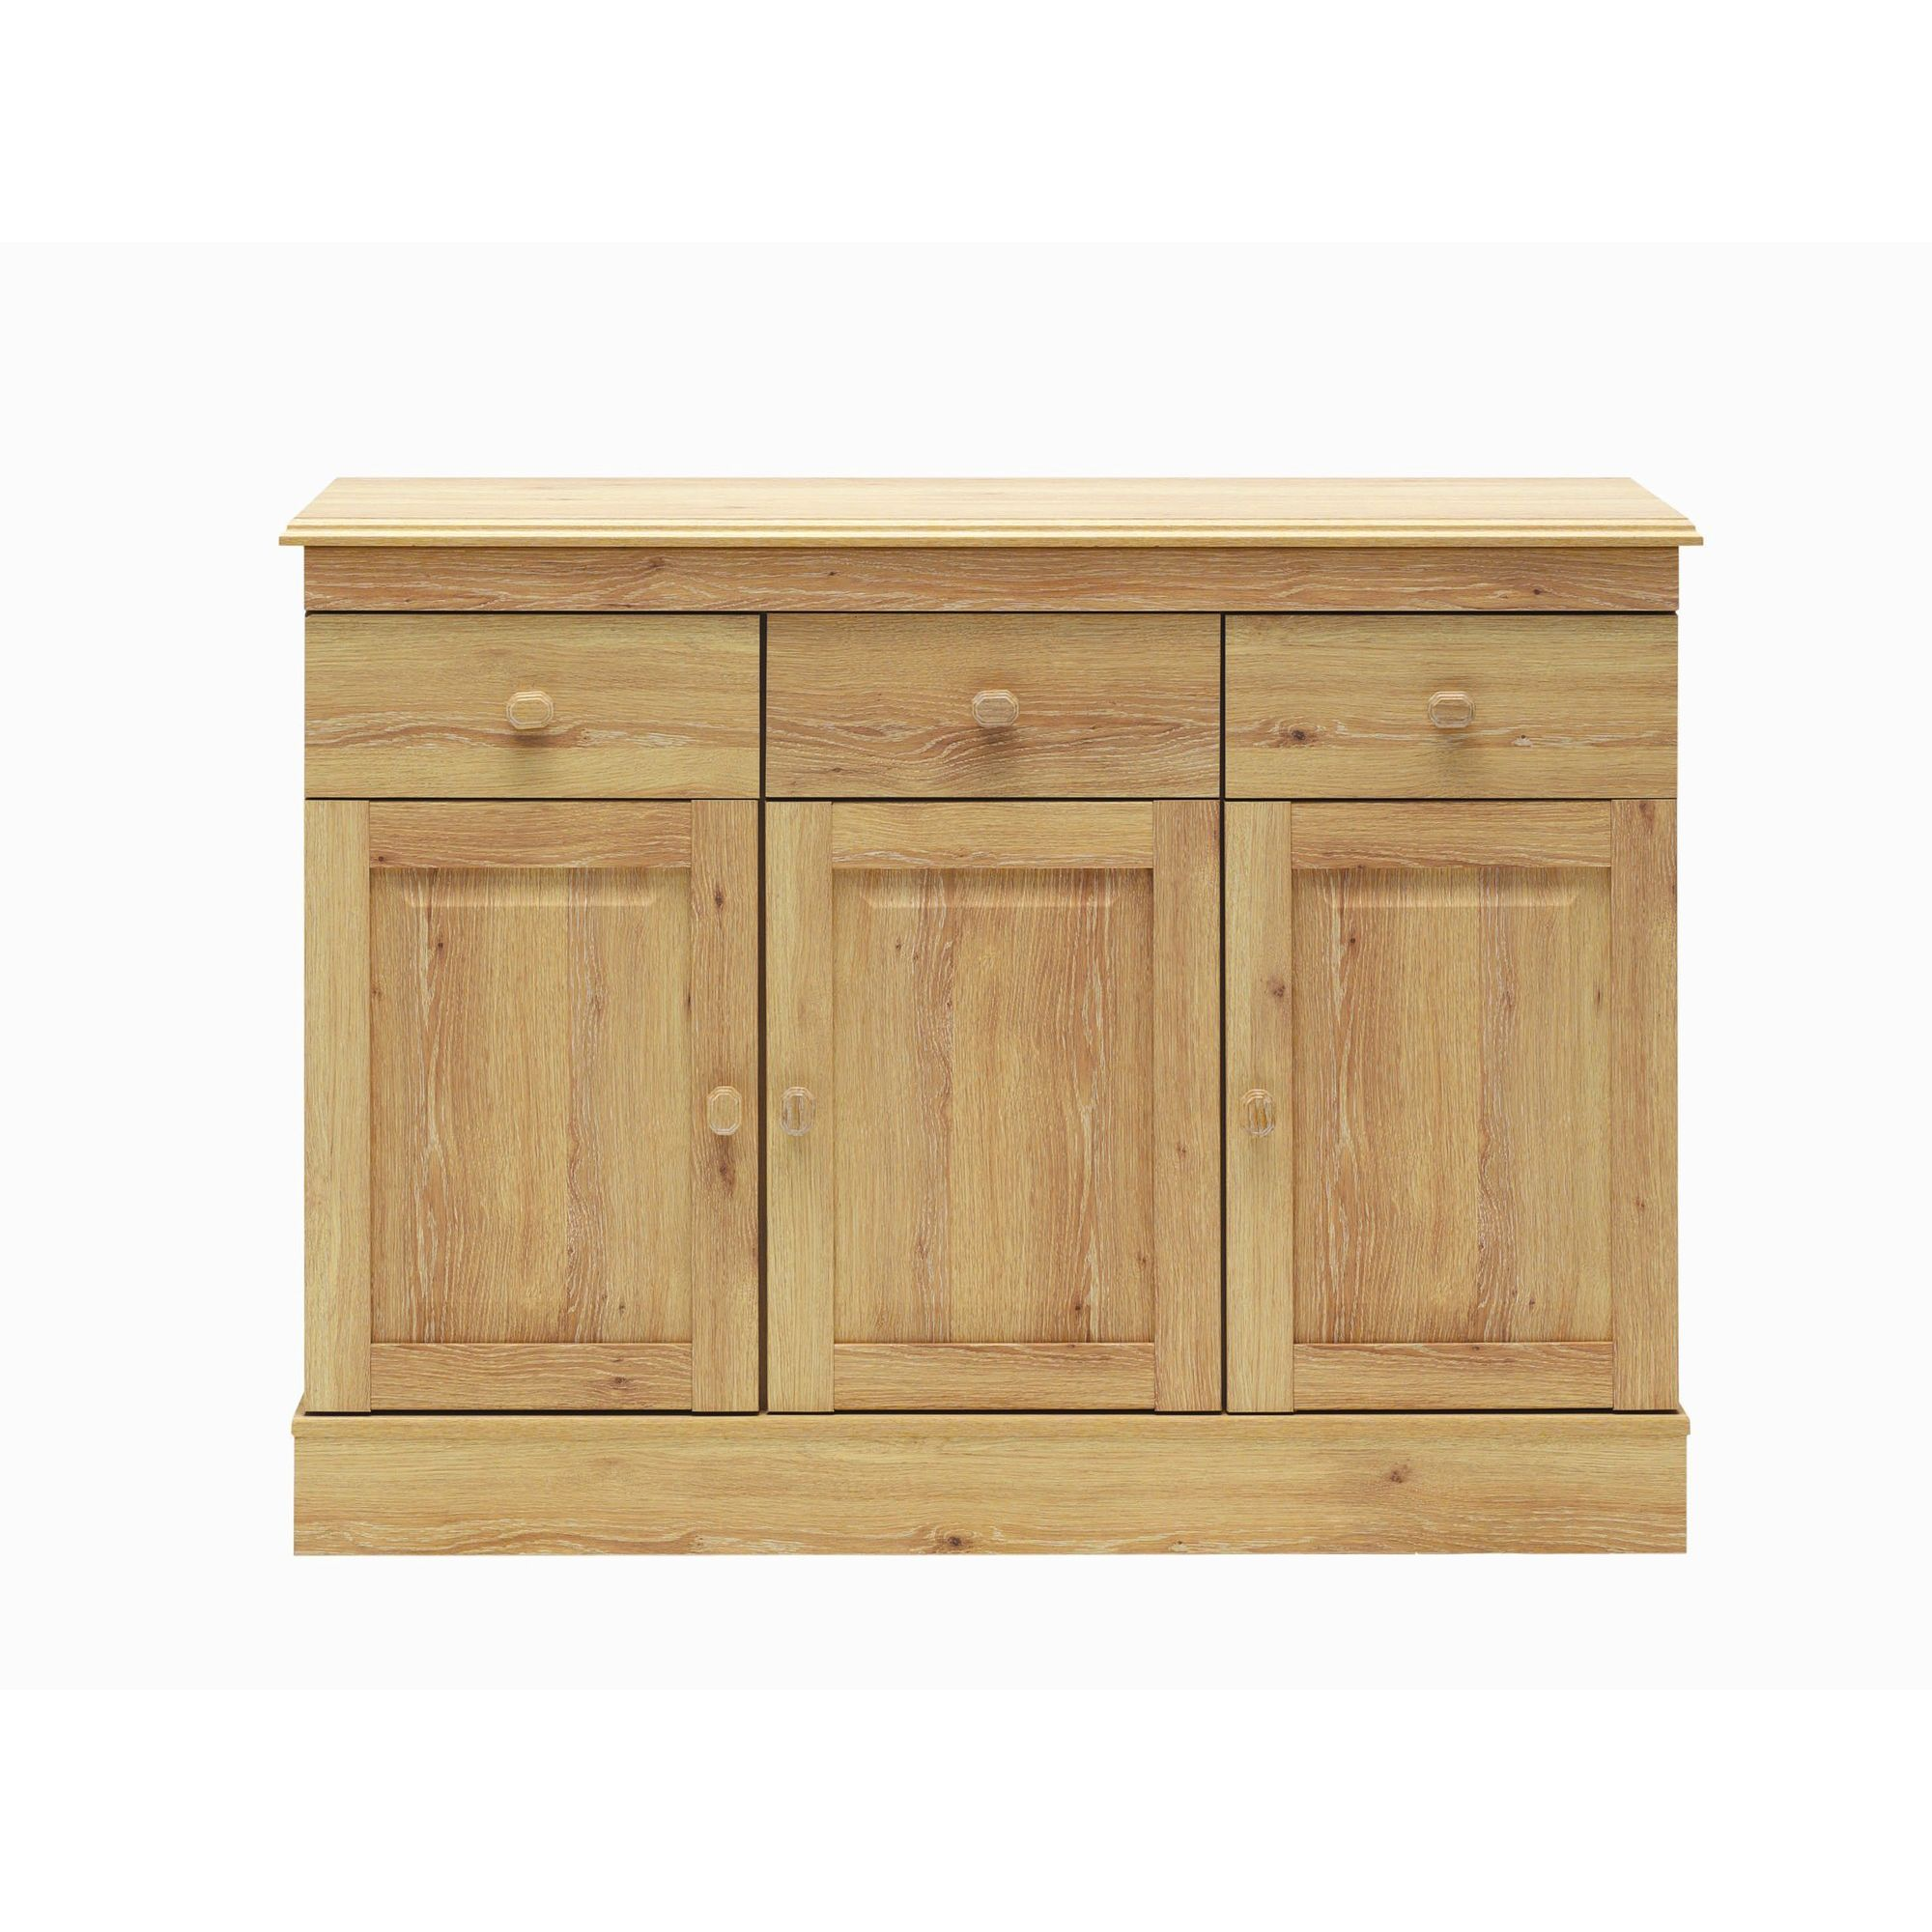 Caxton Driftwood Three Door Sideboard in Limed Oak at Tesco Direct